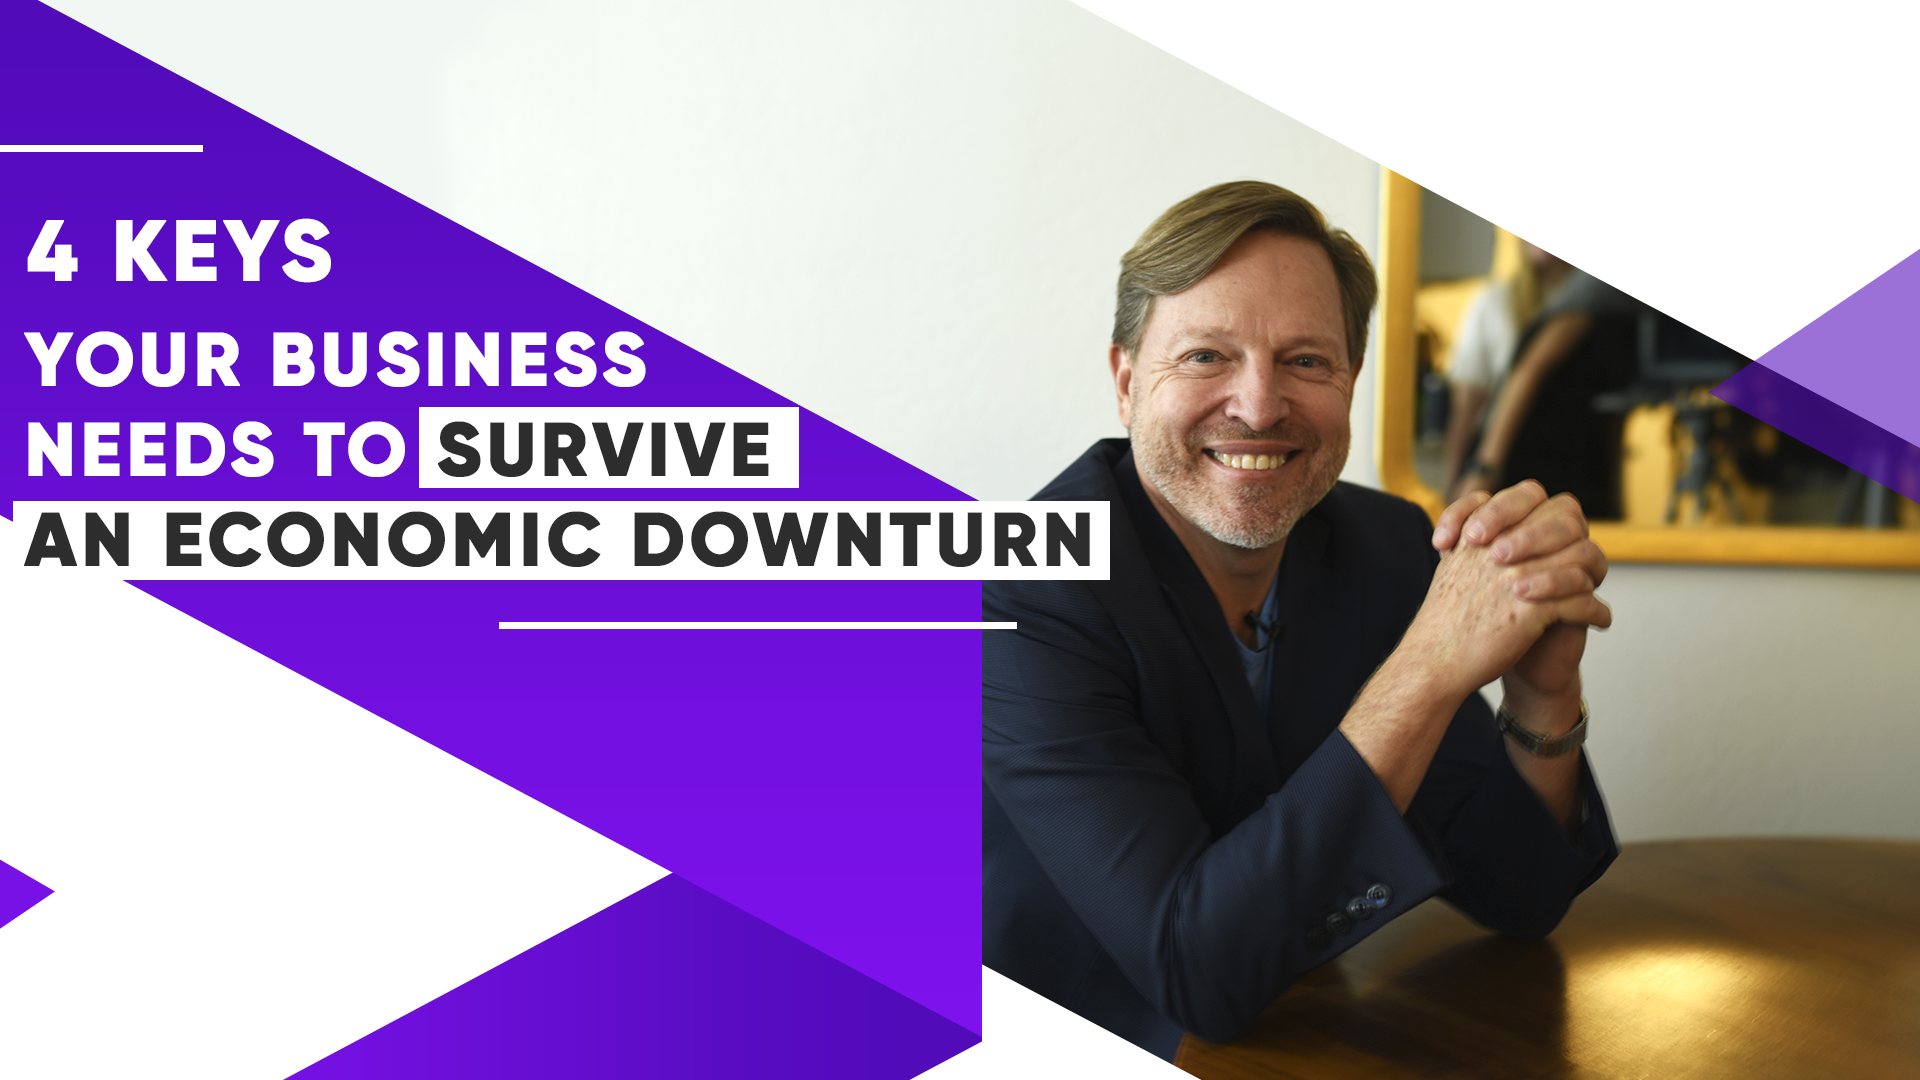 4 Keys Your Business Needs to Survive an Economic Downturn